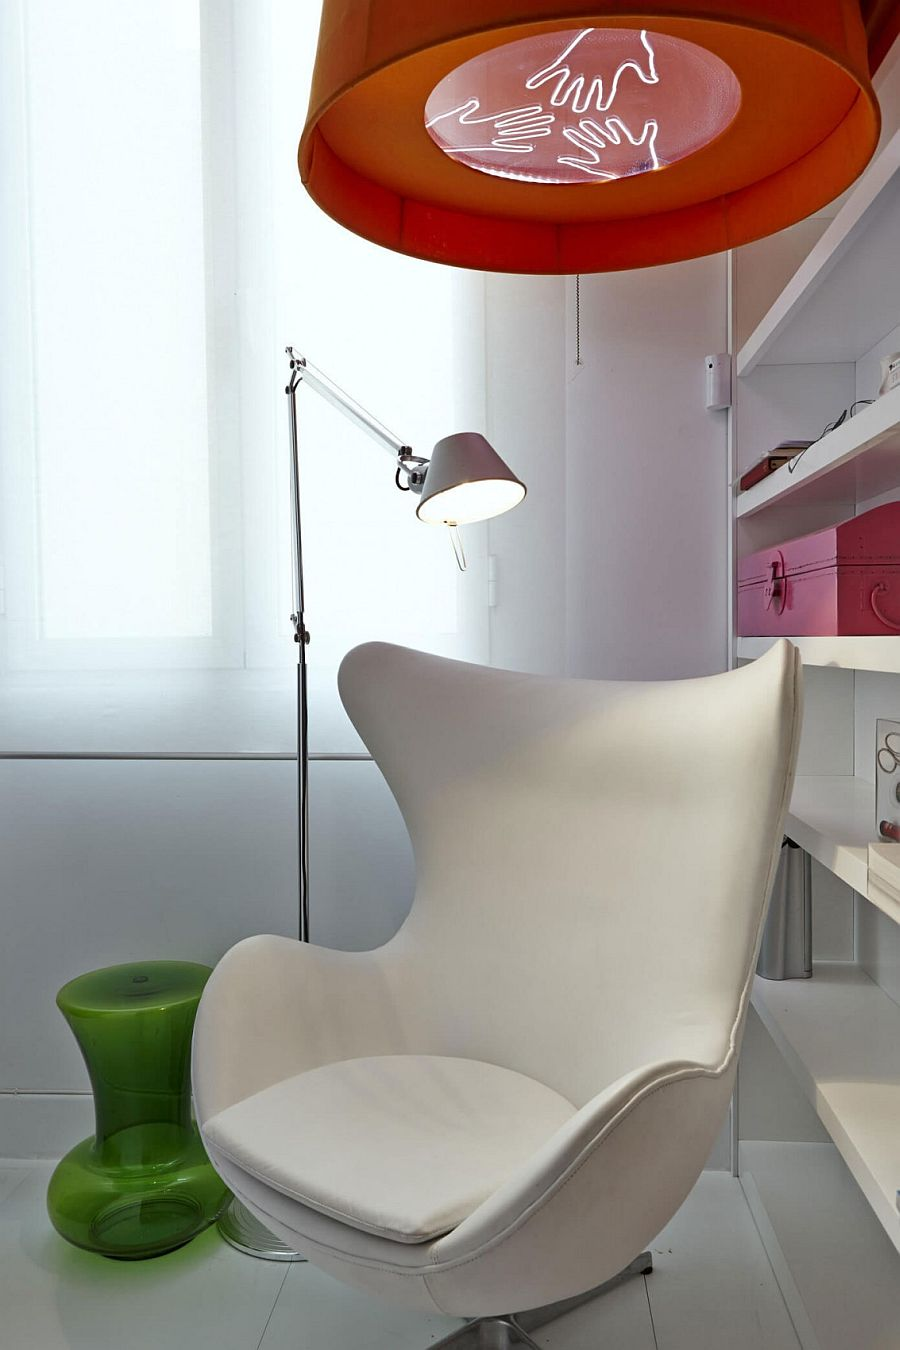 Charming View In Gallery Bright Red Lighting Above The Arne Jacobsen Egg Chair